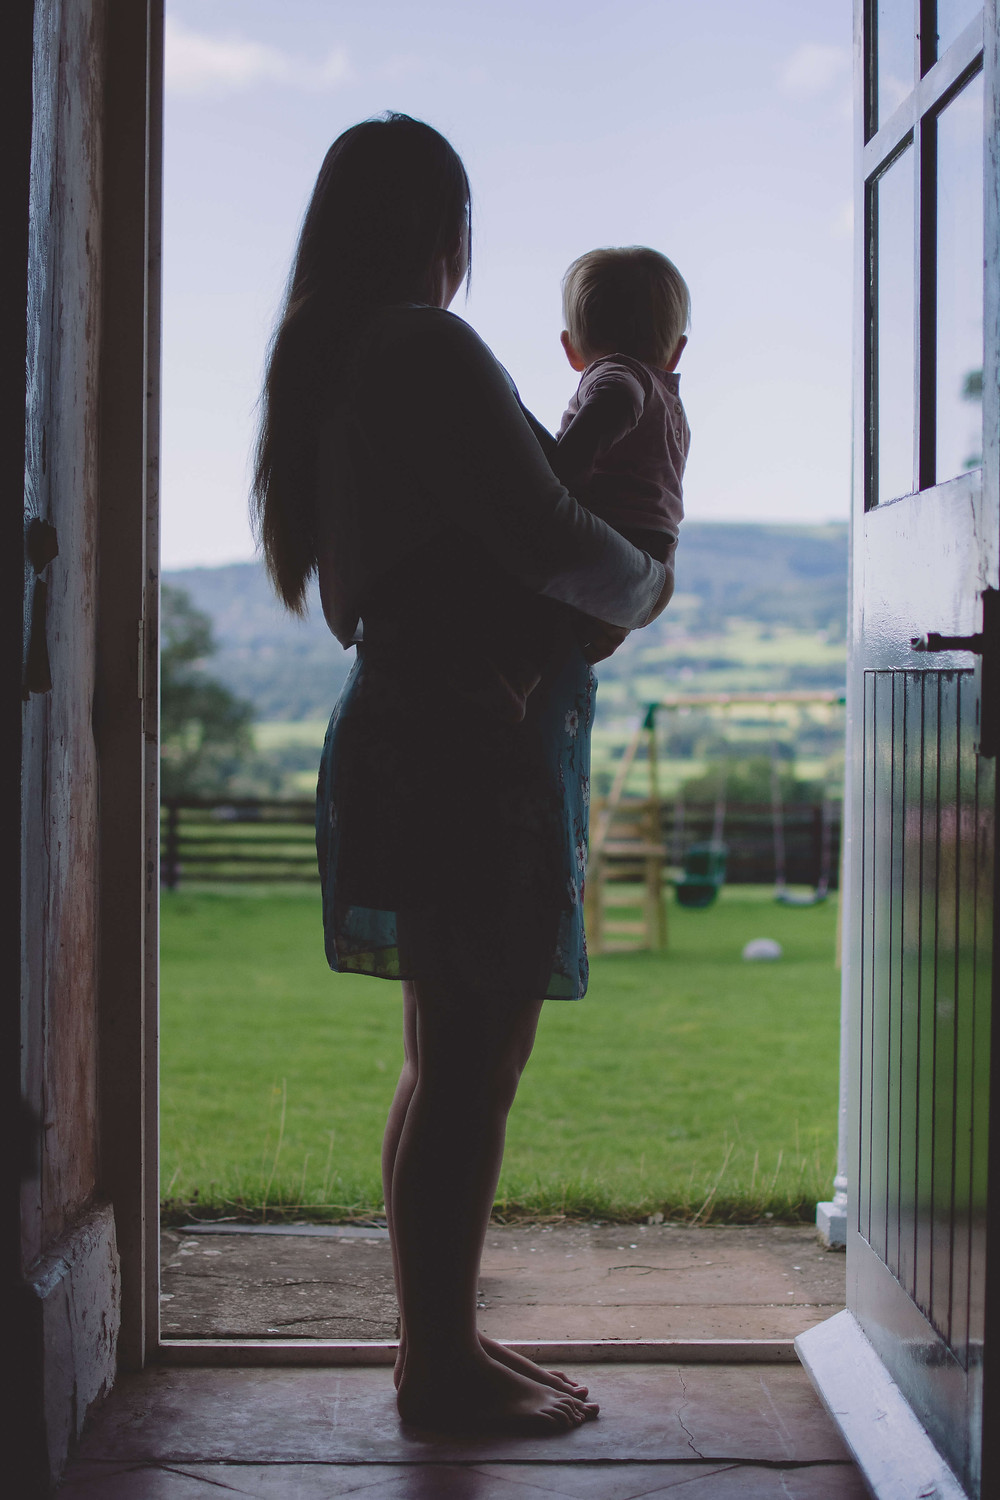 Mum and daughter cuddle looking outside